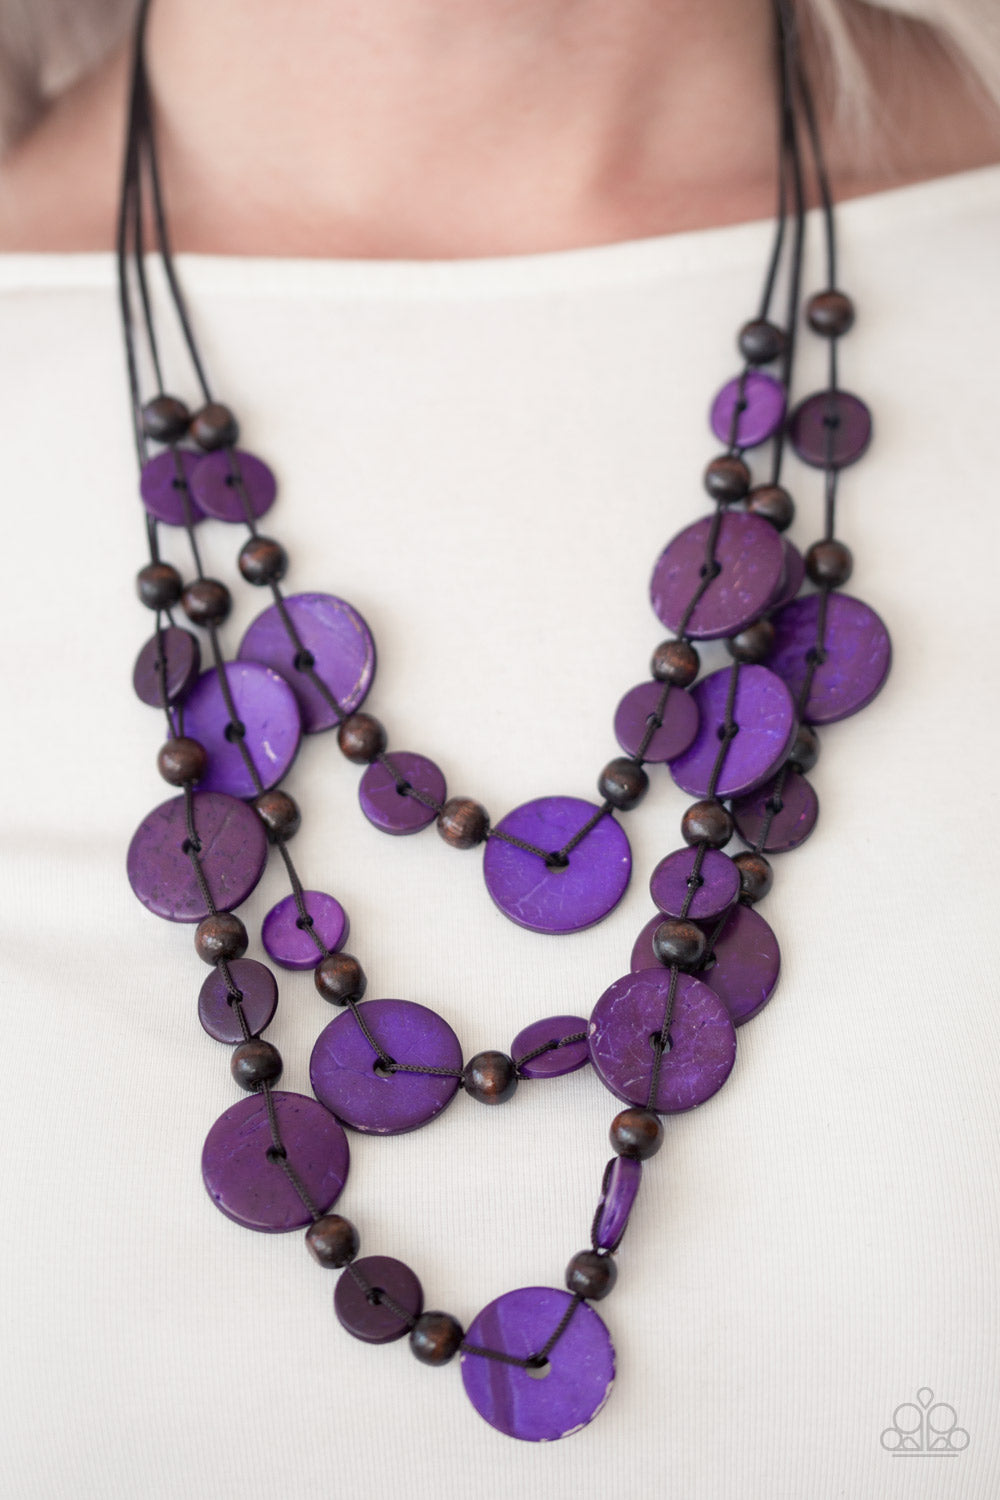 Paparazzi - South Beach Summer - Purple Wood Necklace Set - Classy Jewels by Linda